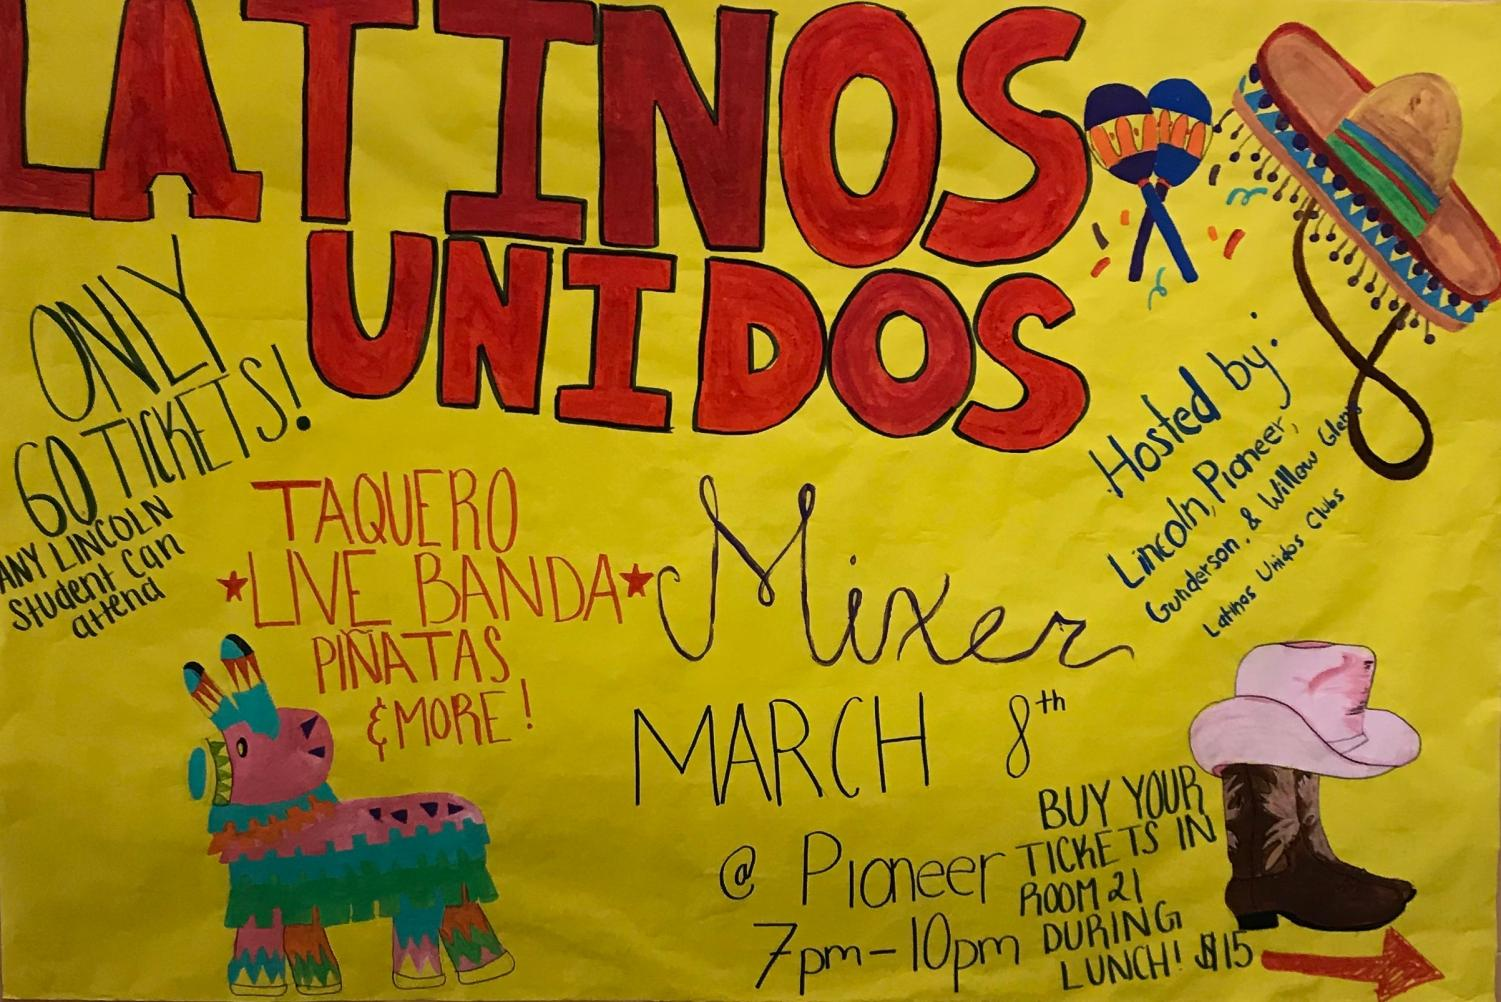 March 8, 2019 is the day of the first ever Latinos Unidos